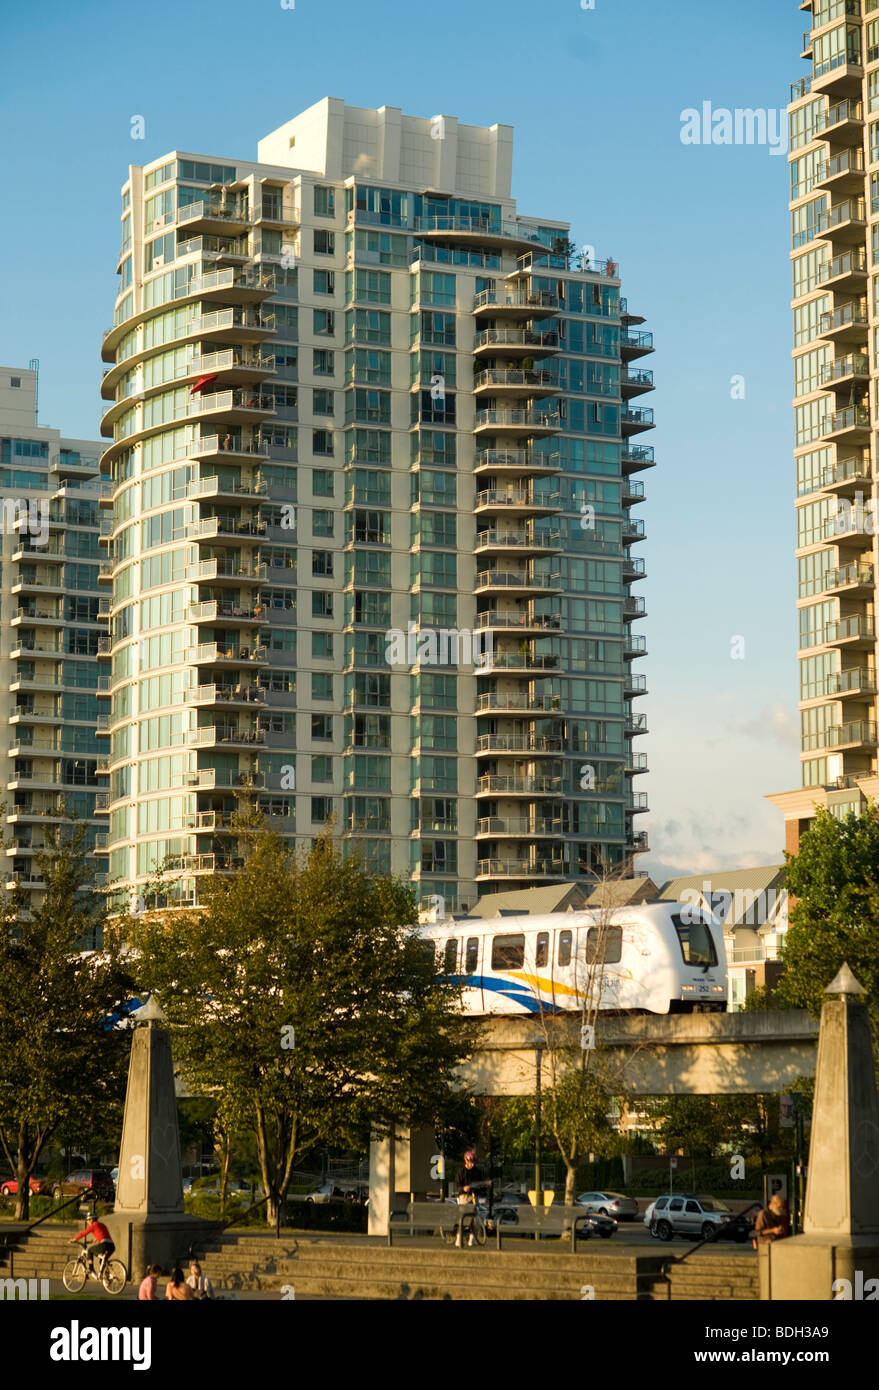 Vancouver Condominium Towers with the Skytrain in the foreground. Vancouver BC, Canada Stock Photo